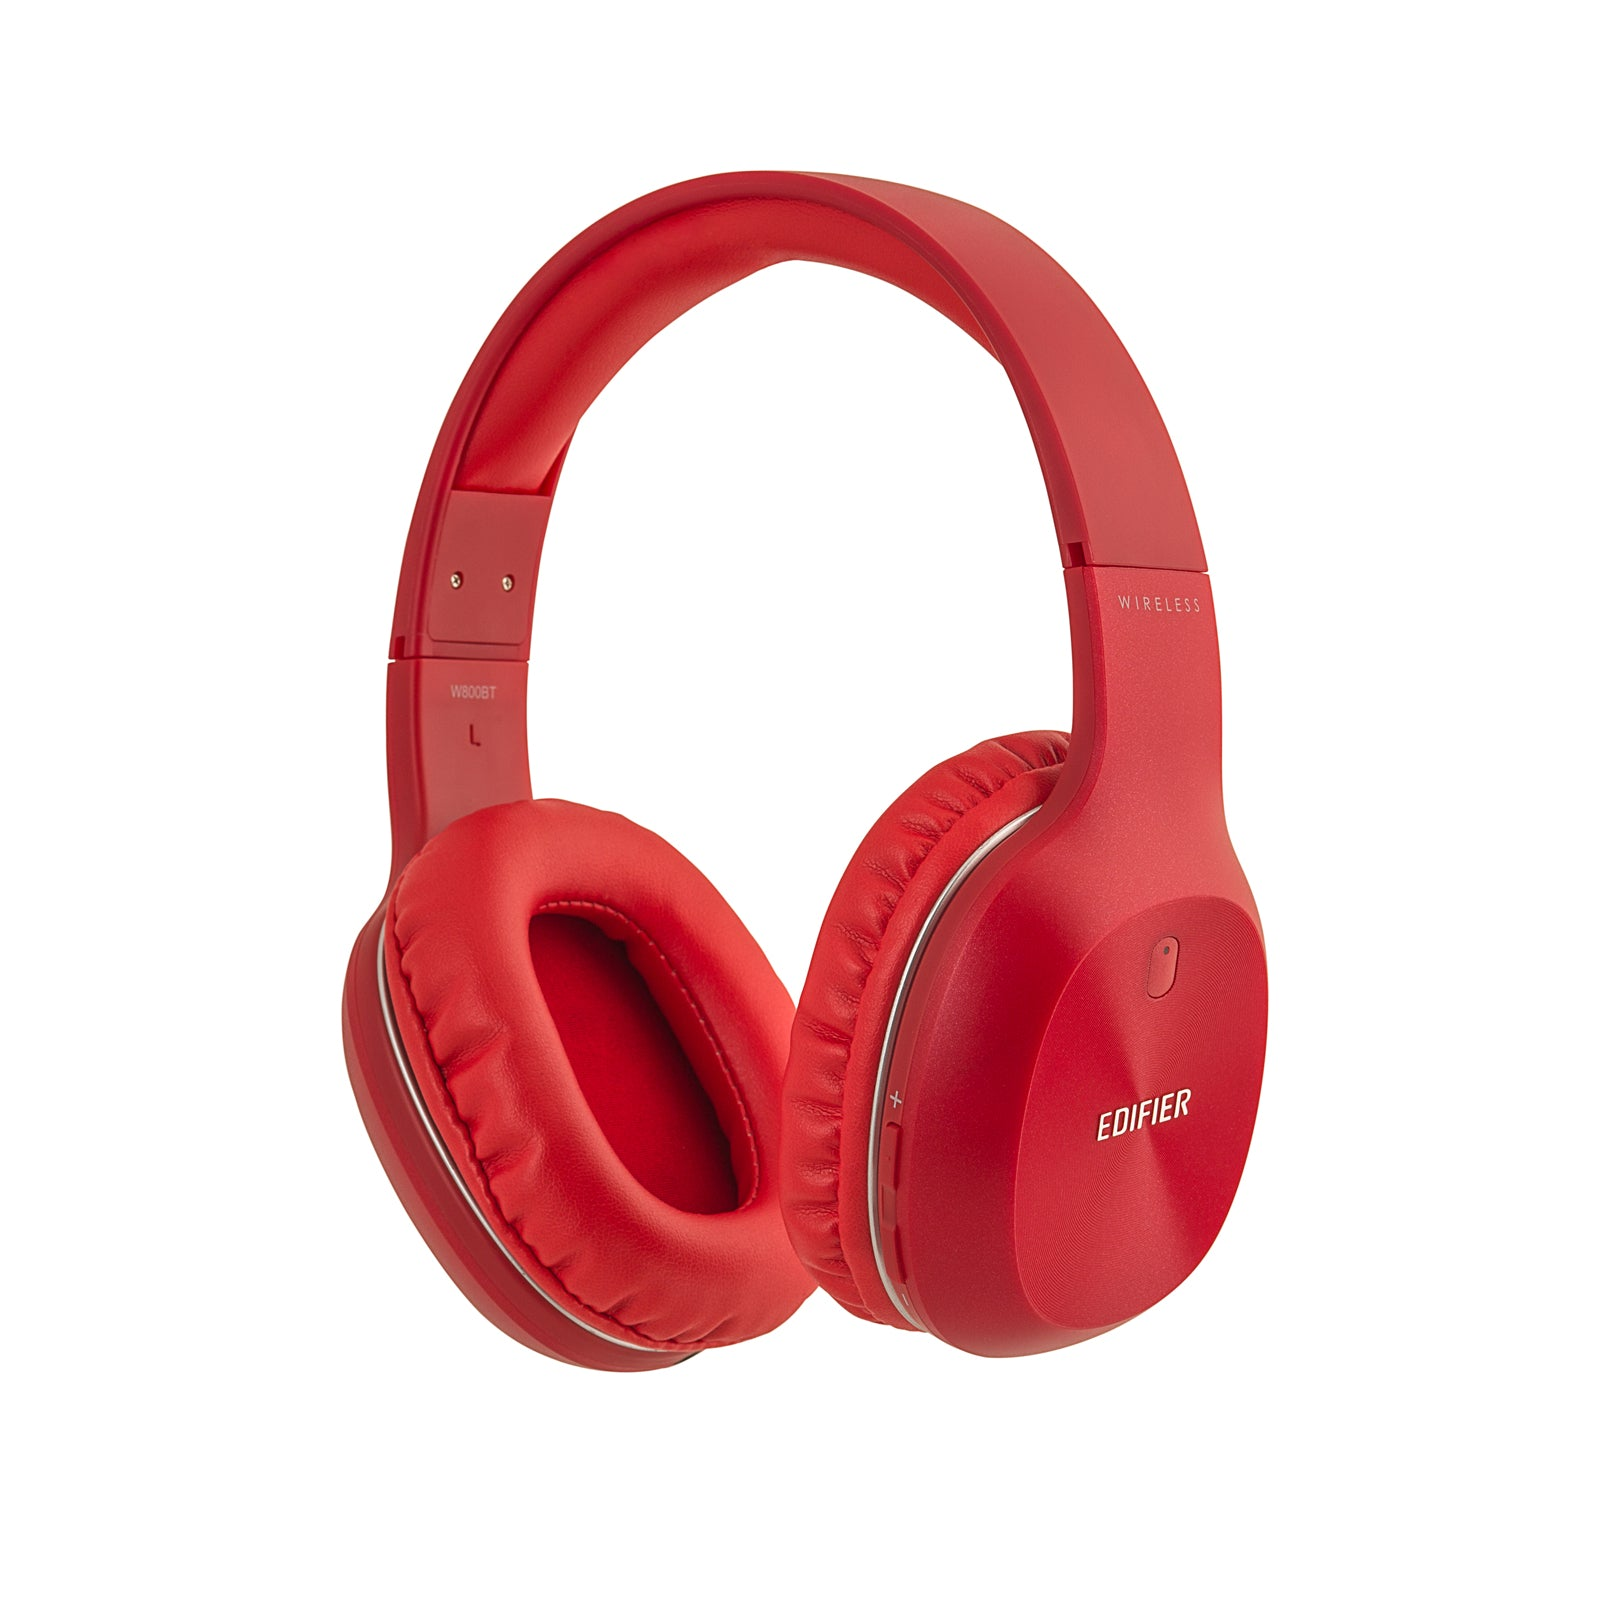 W800BT Bluetooth Wireless Over-Ear Headphones